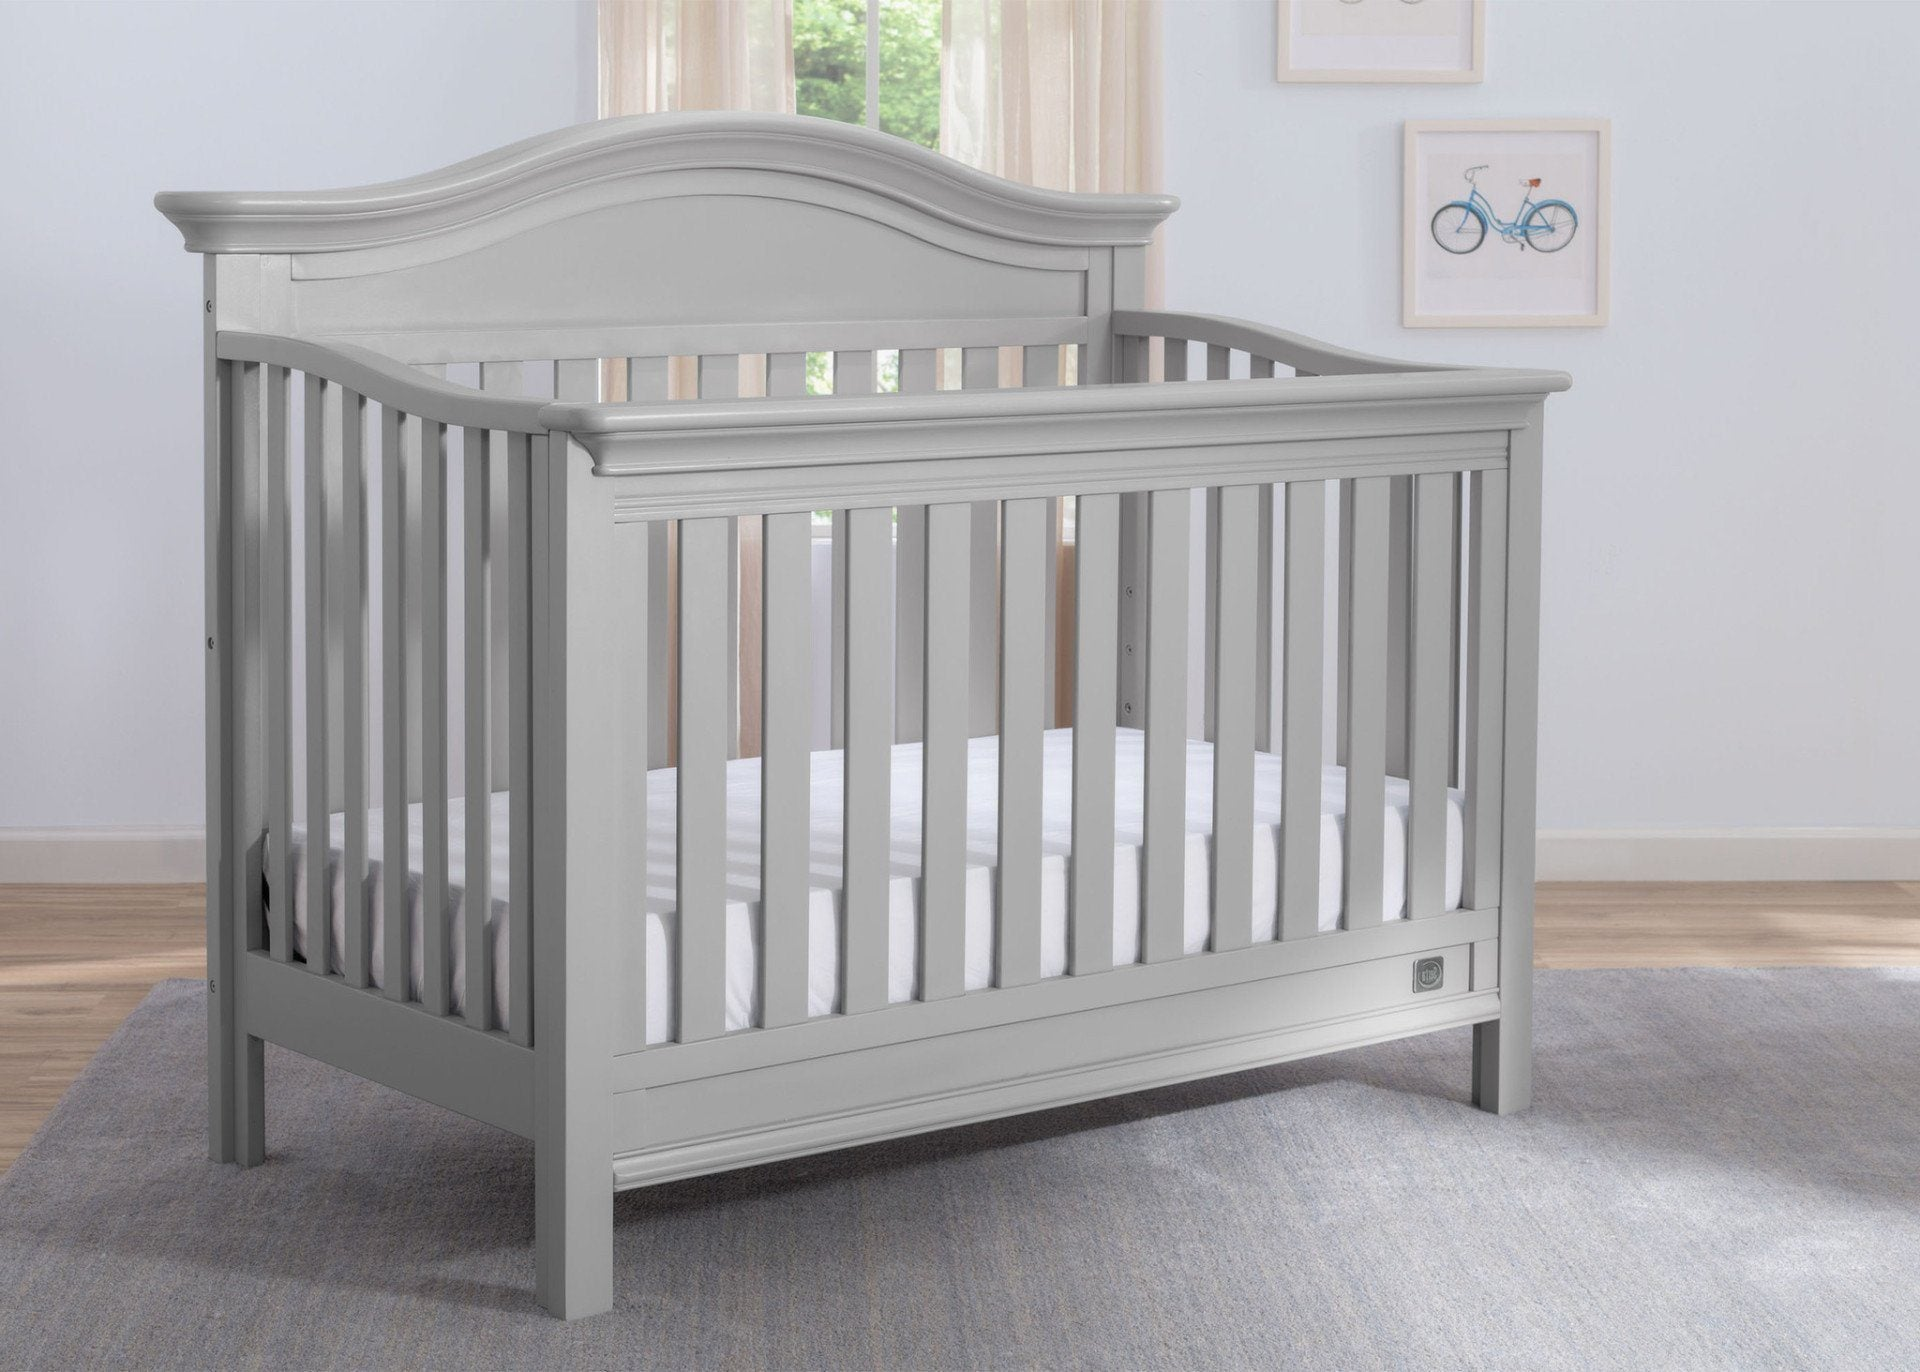 Serta Grey (026) Banbury 4-in-1 Convertible Crib, Hangtag